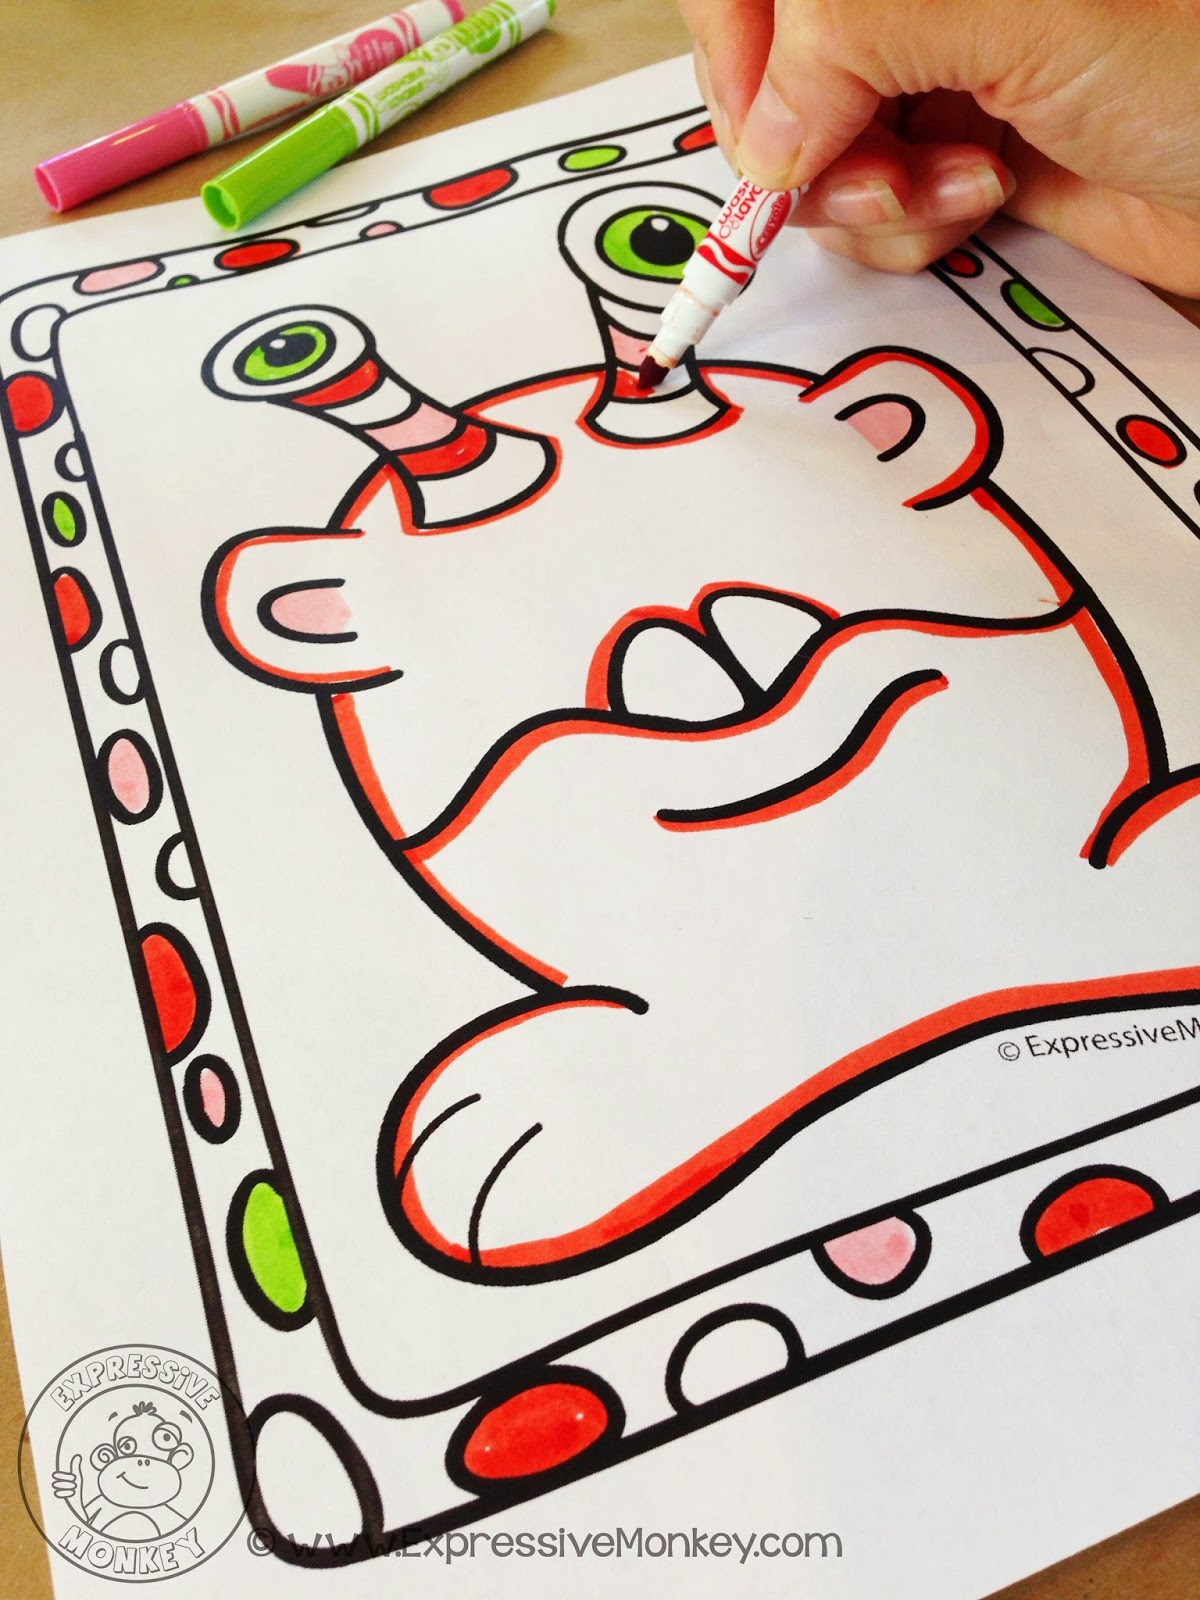 Expressive Monkey demonstrates how to make a monster using contrasting colors and a texture rubbing.